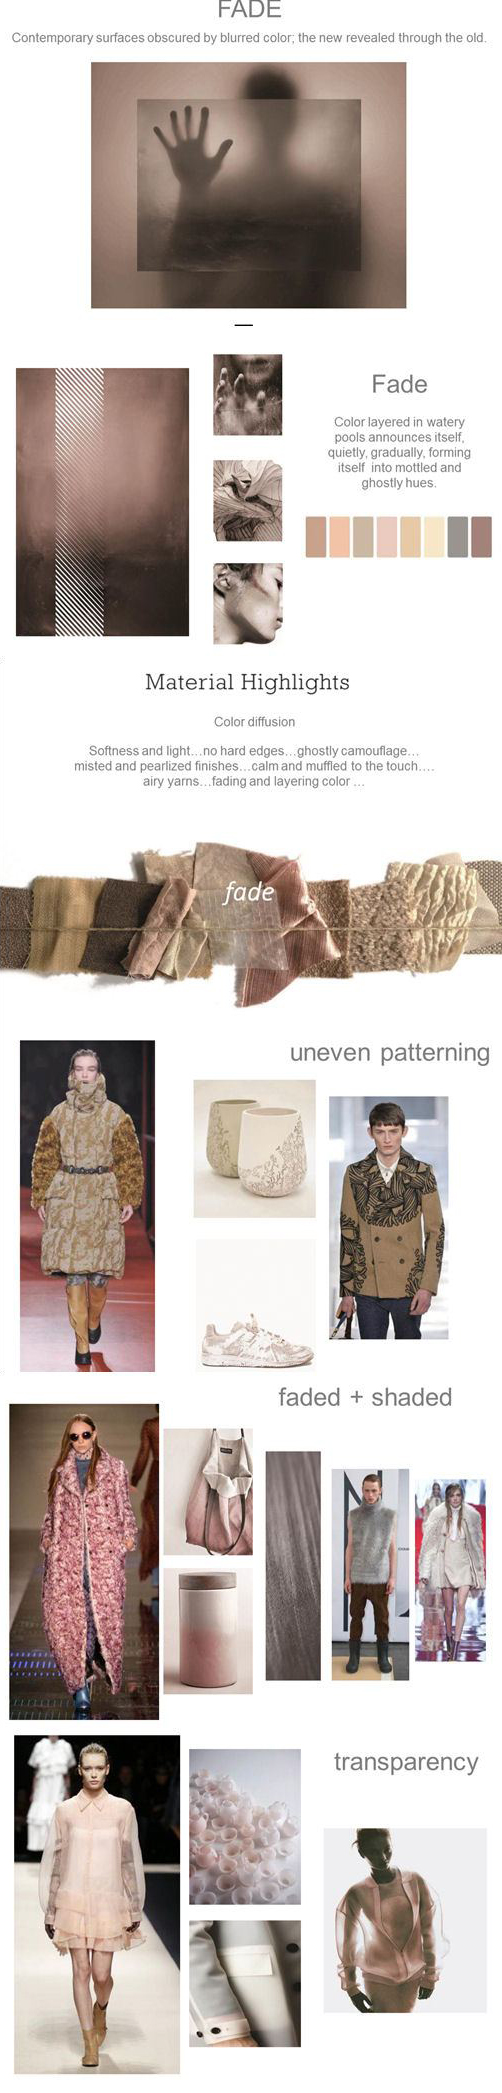 Pantone Color Trends Autumn/Winter 2016/17